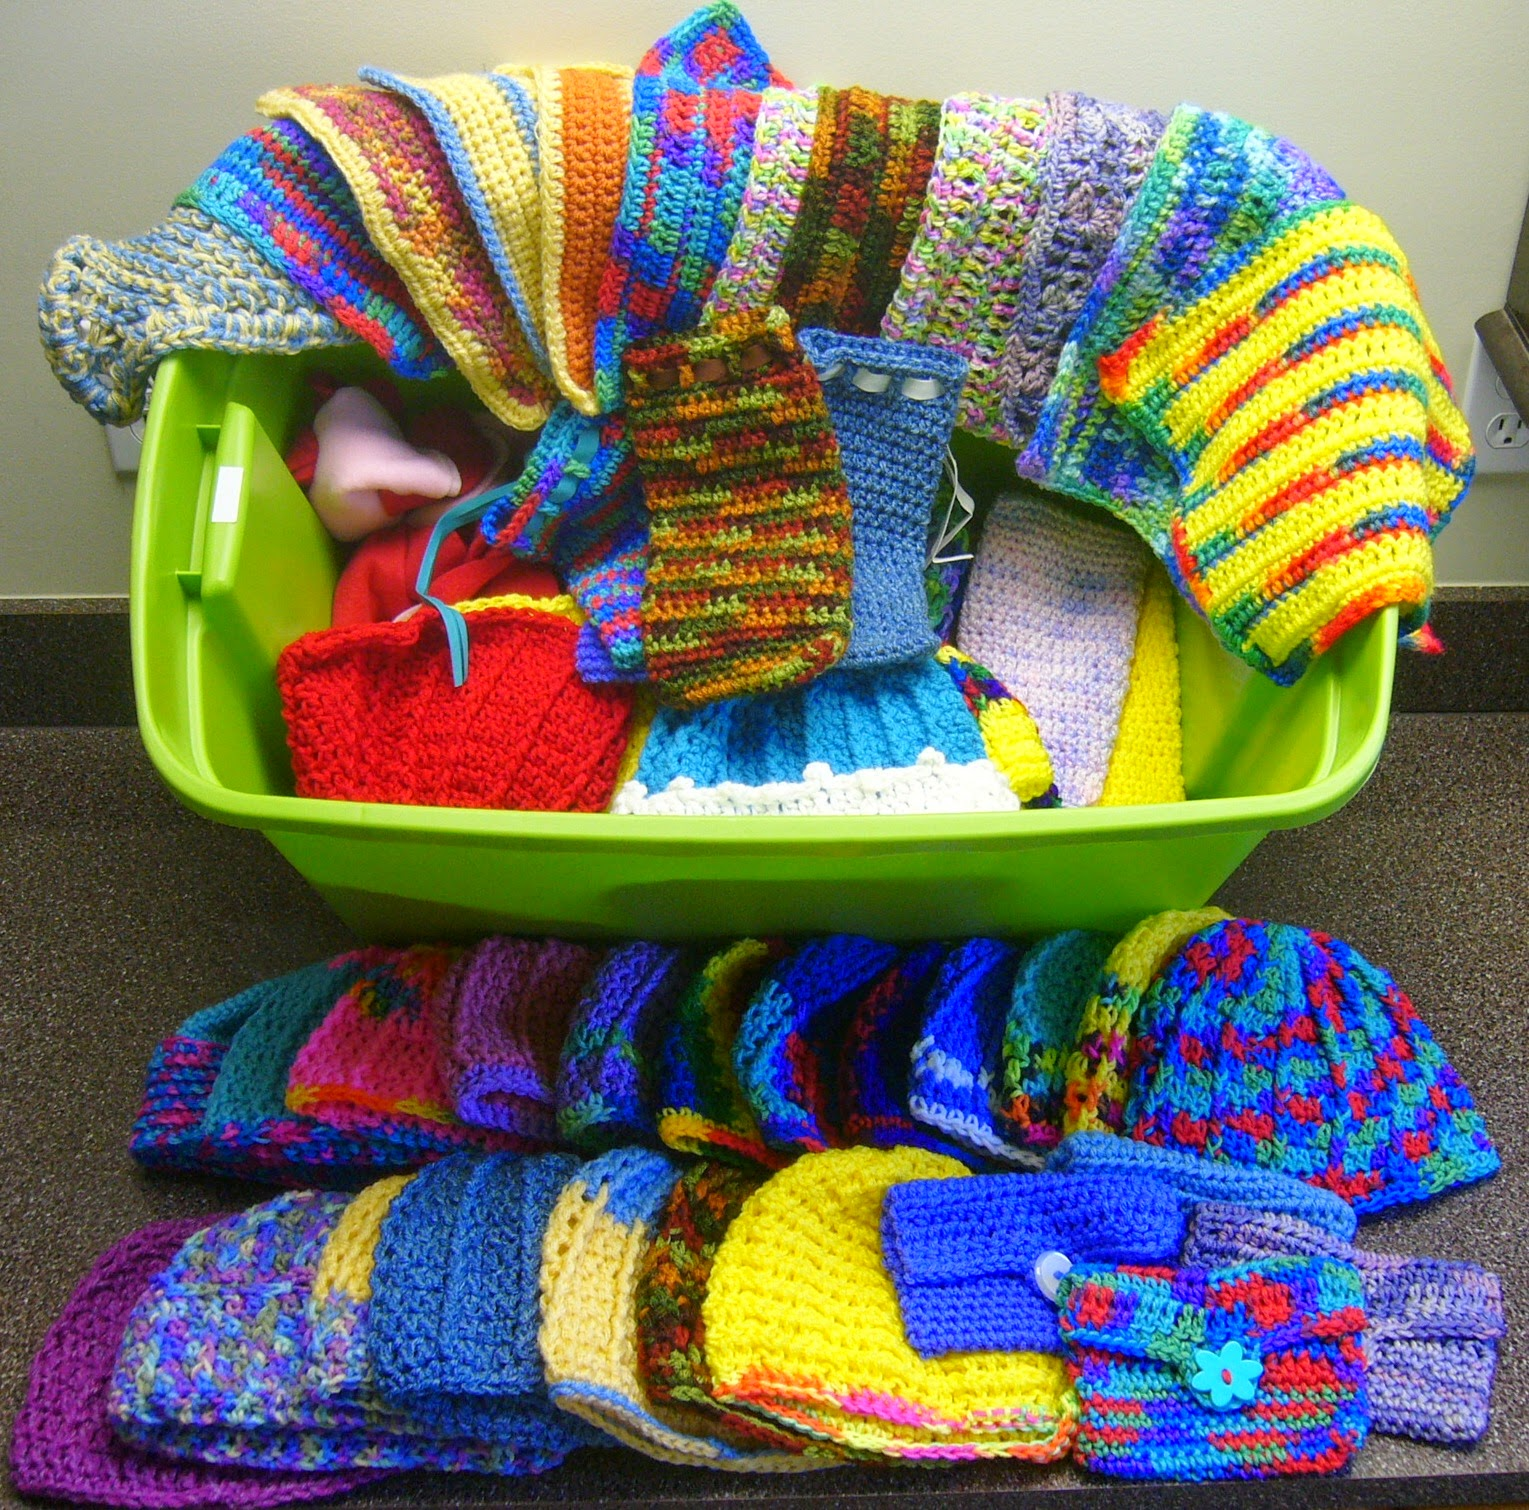 Crochet donations to Operation Christmas Child shoeboxes.